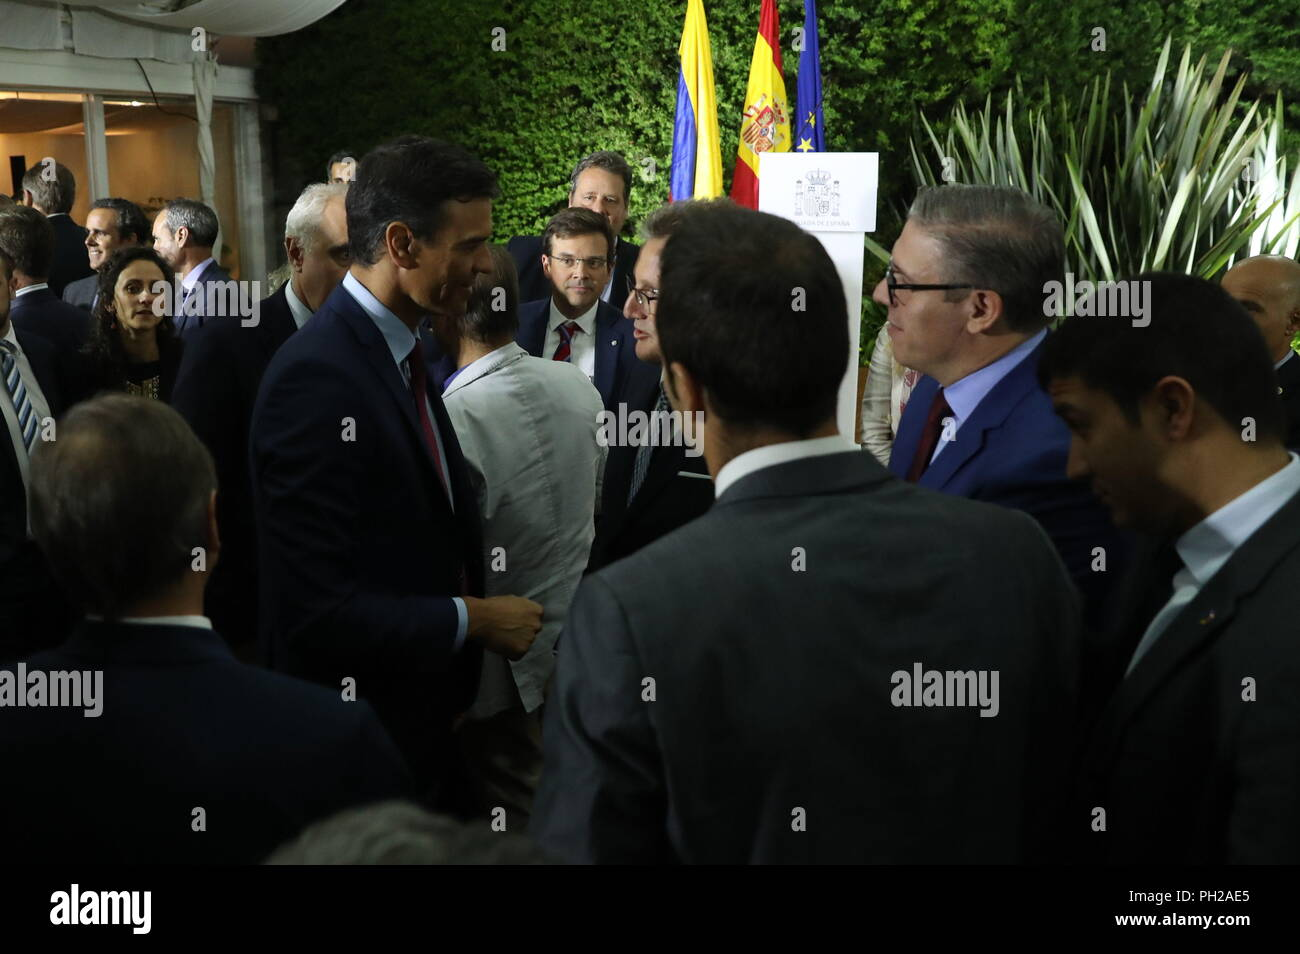 Spanish Prime Minister Pedro Sanchez (C-L) holds a meeting with the Spanish community residing in Colombia held at the Spanish embassy, in Bogota, Colombia, 29 August 2018. Sanchez arrived in Bogota today to meet tomorrow with the Colombian President Ivan Duque, on the third stop of his Latin American tour. EFE/J.J. Guillen - Stock Image